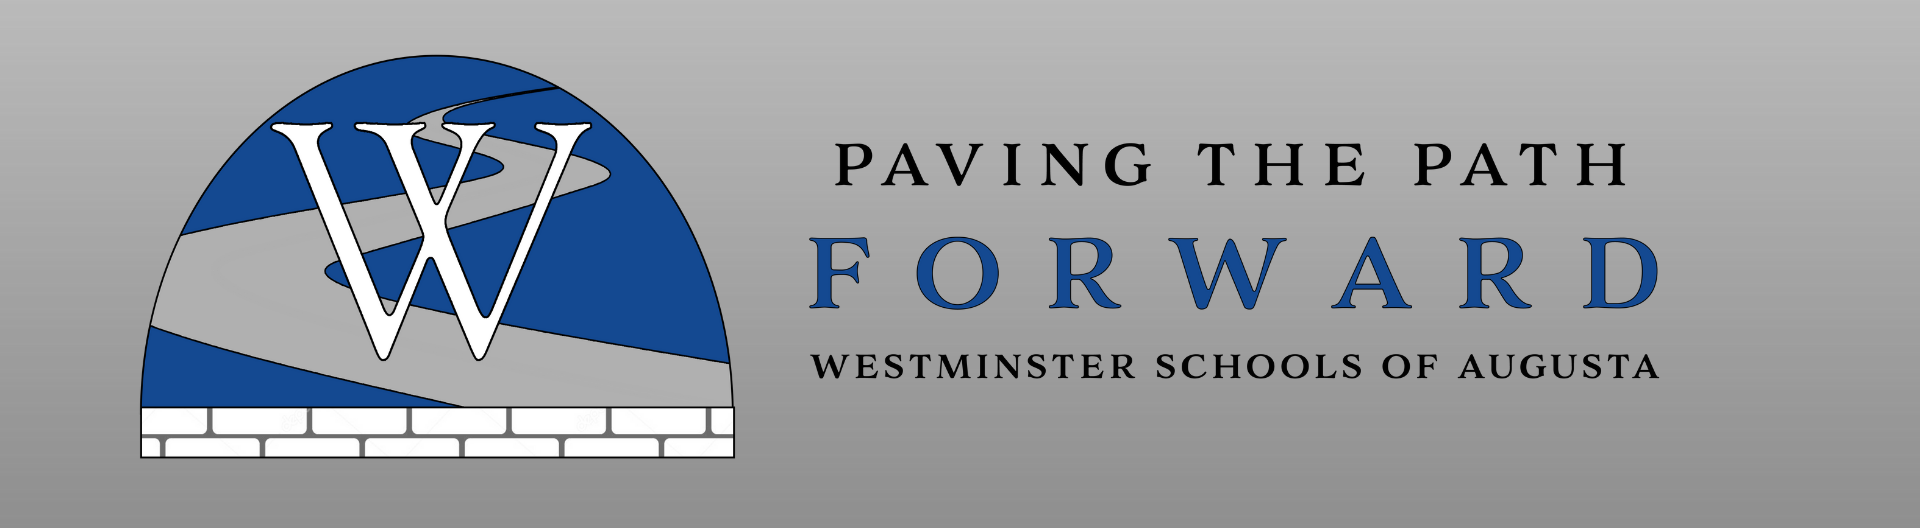 Paving Path Logo Banner | Westminster